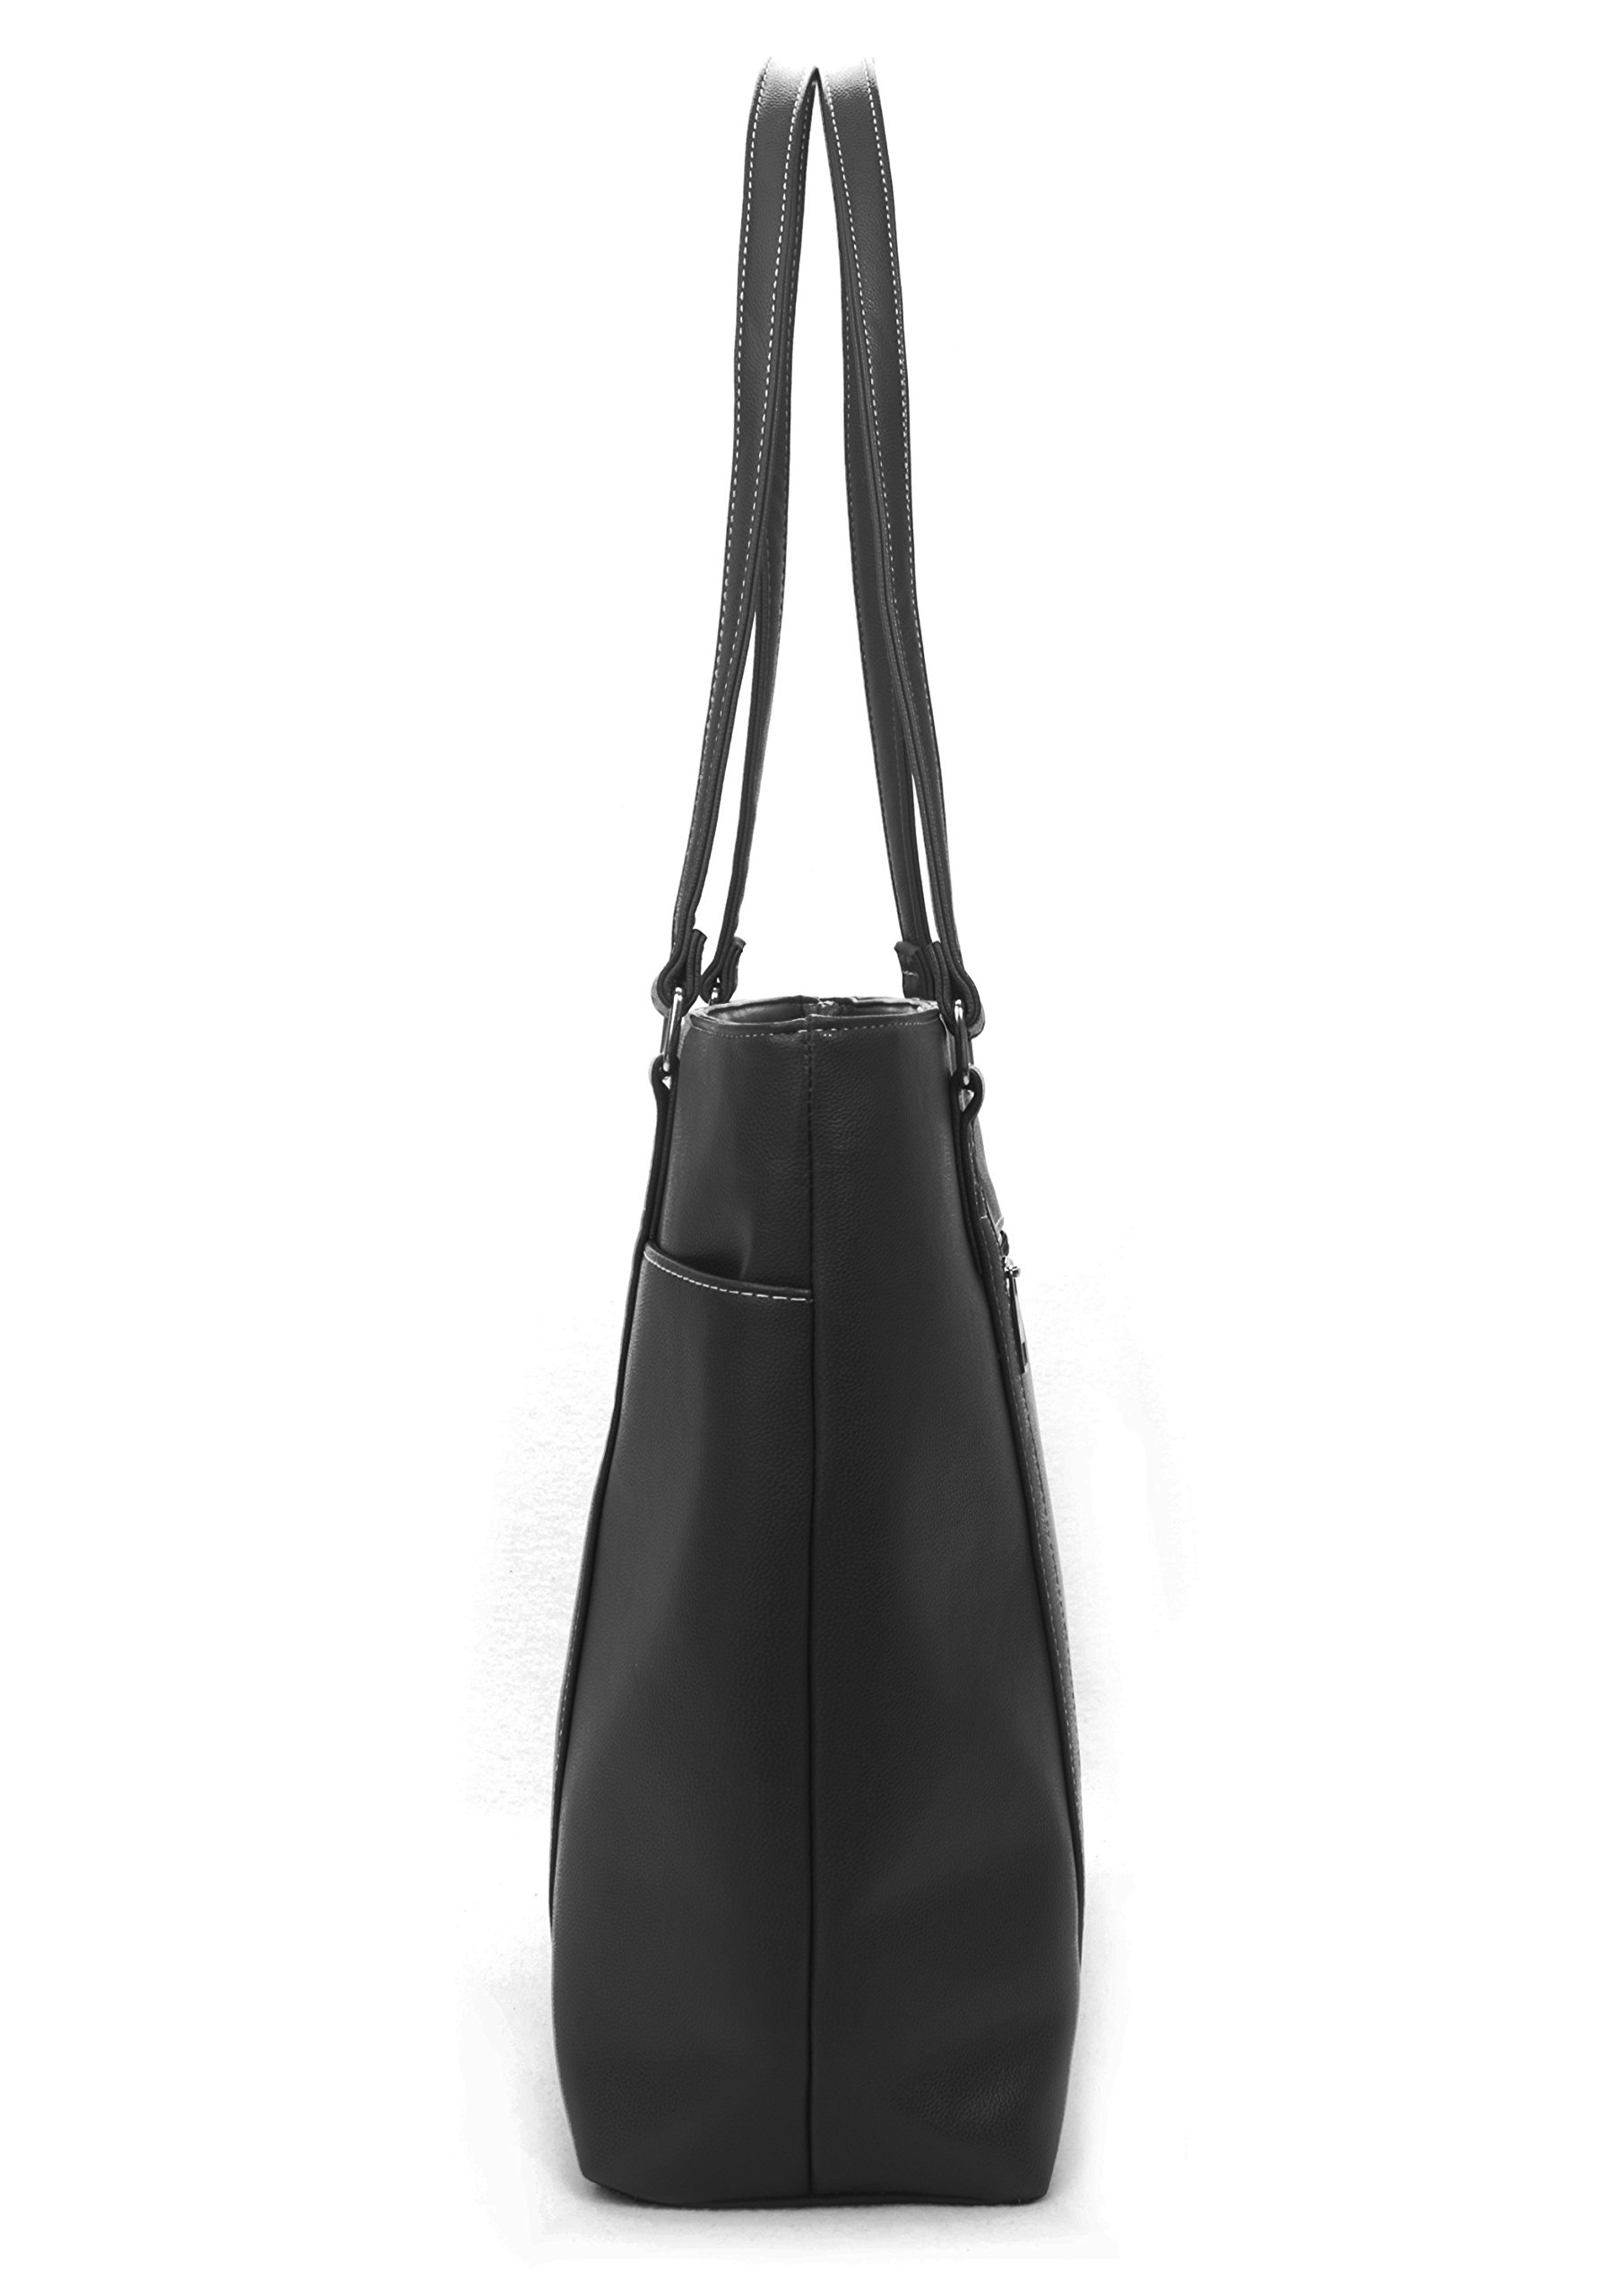 Overbrooke Classic Womens Tote Bag for Laptops  up to 15.6 Inches, Black by Overbrooke (Image #2)